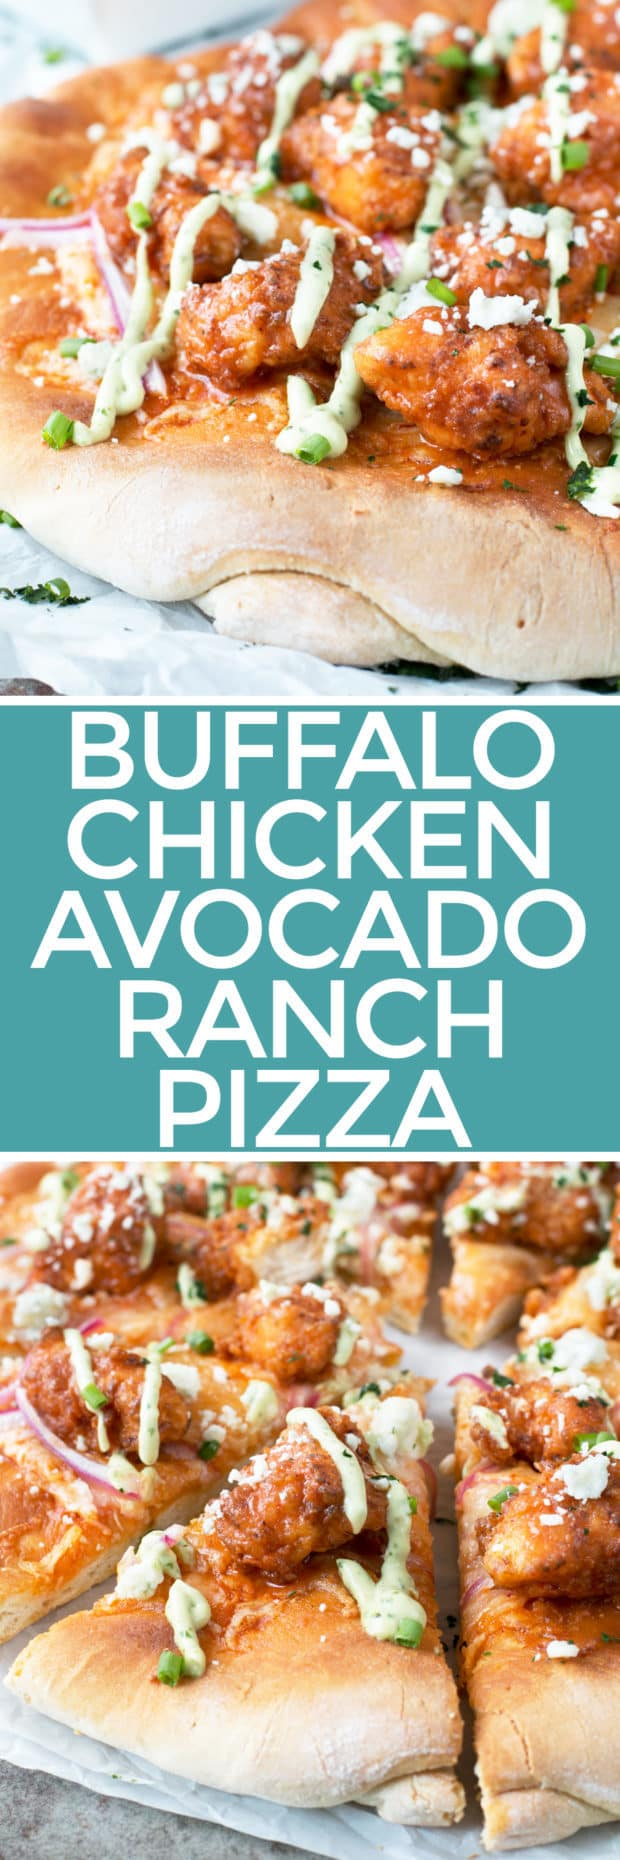 Buffalo Chicken Pizza with Blue Cheese Avocado Dressing | cakenknife.com #pizza #buffalochicken #chickenwings